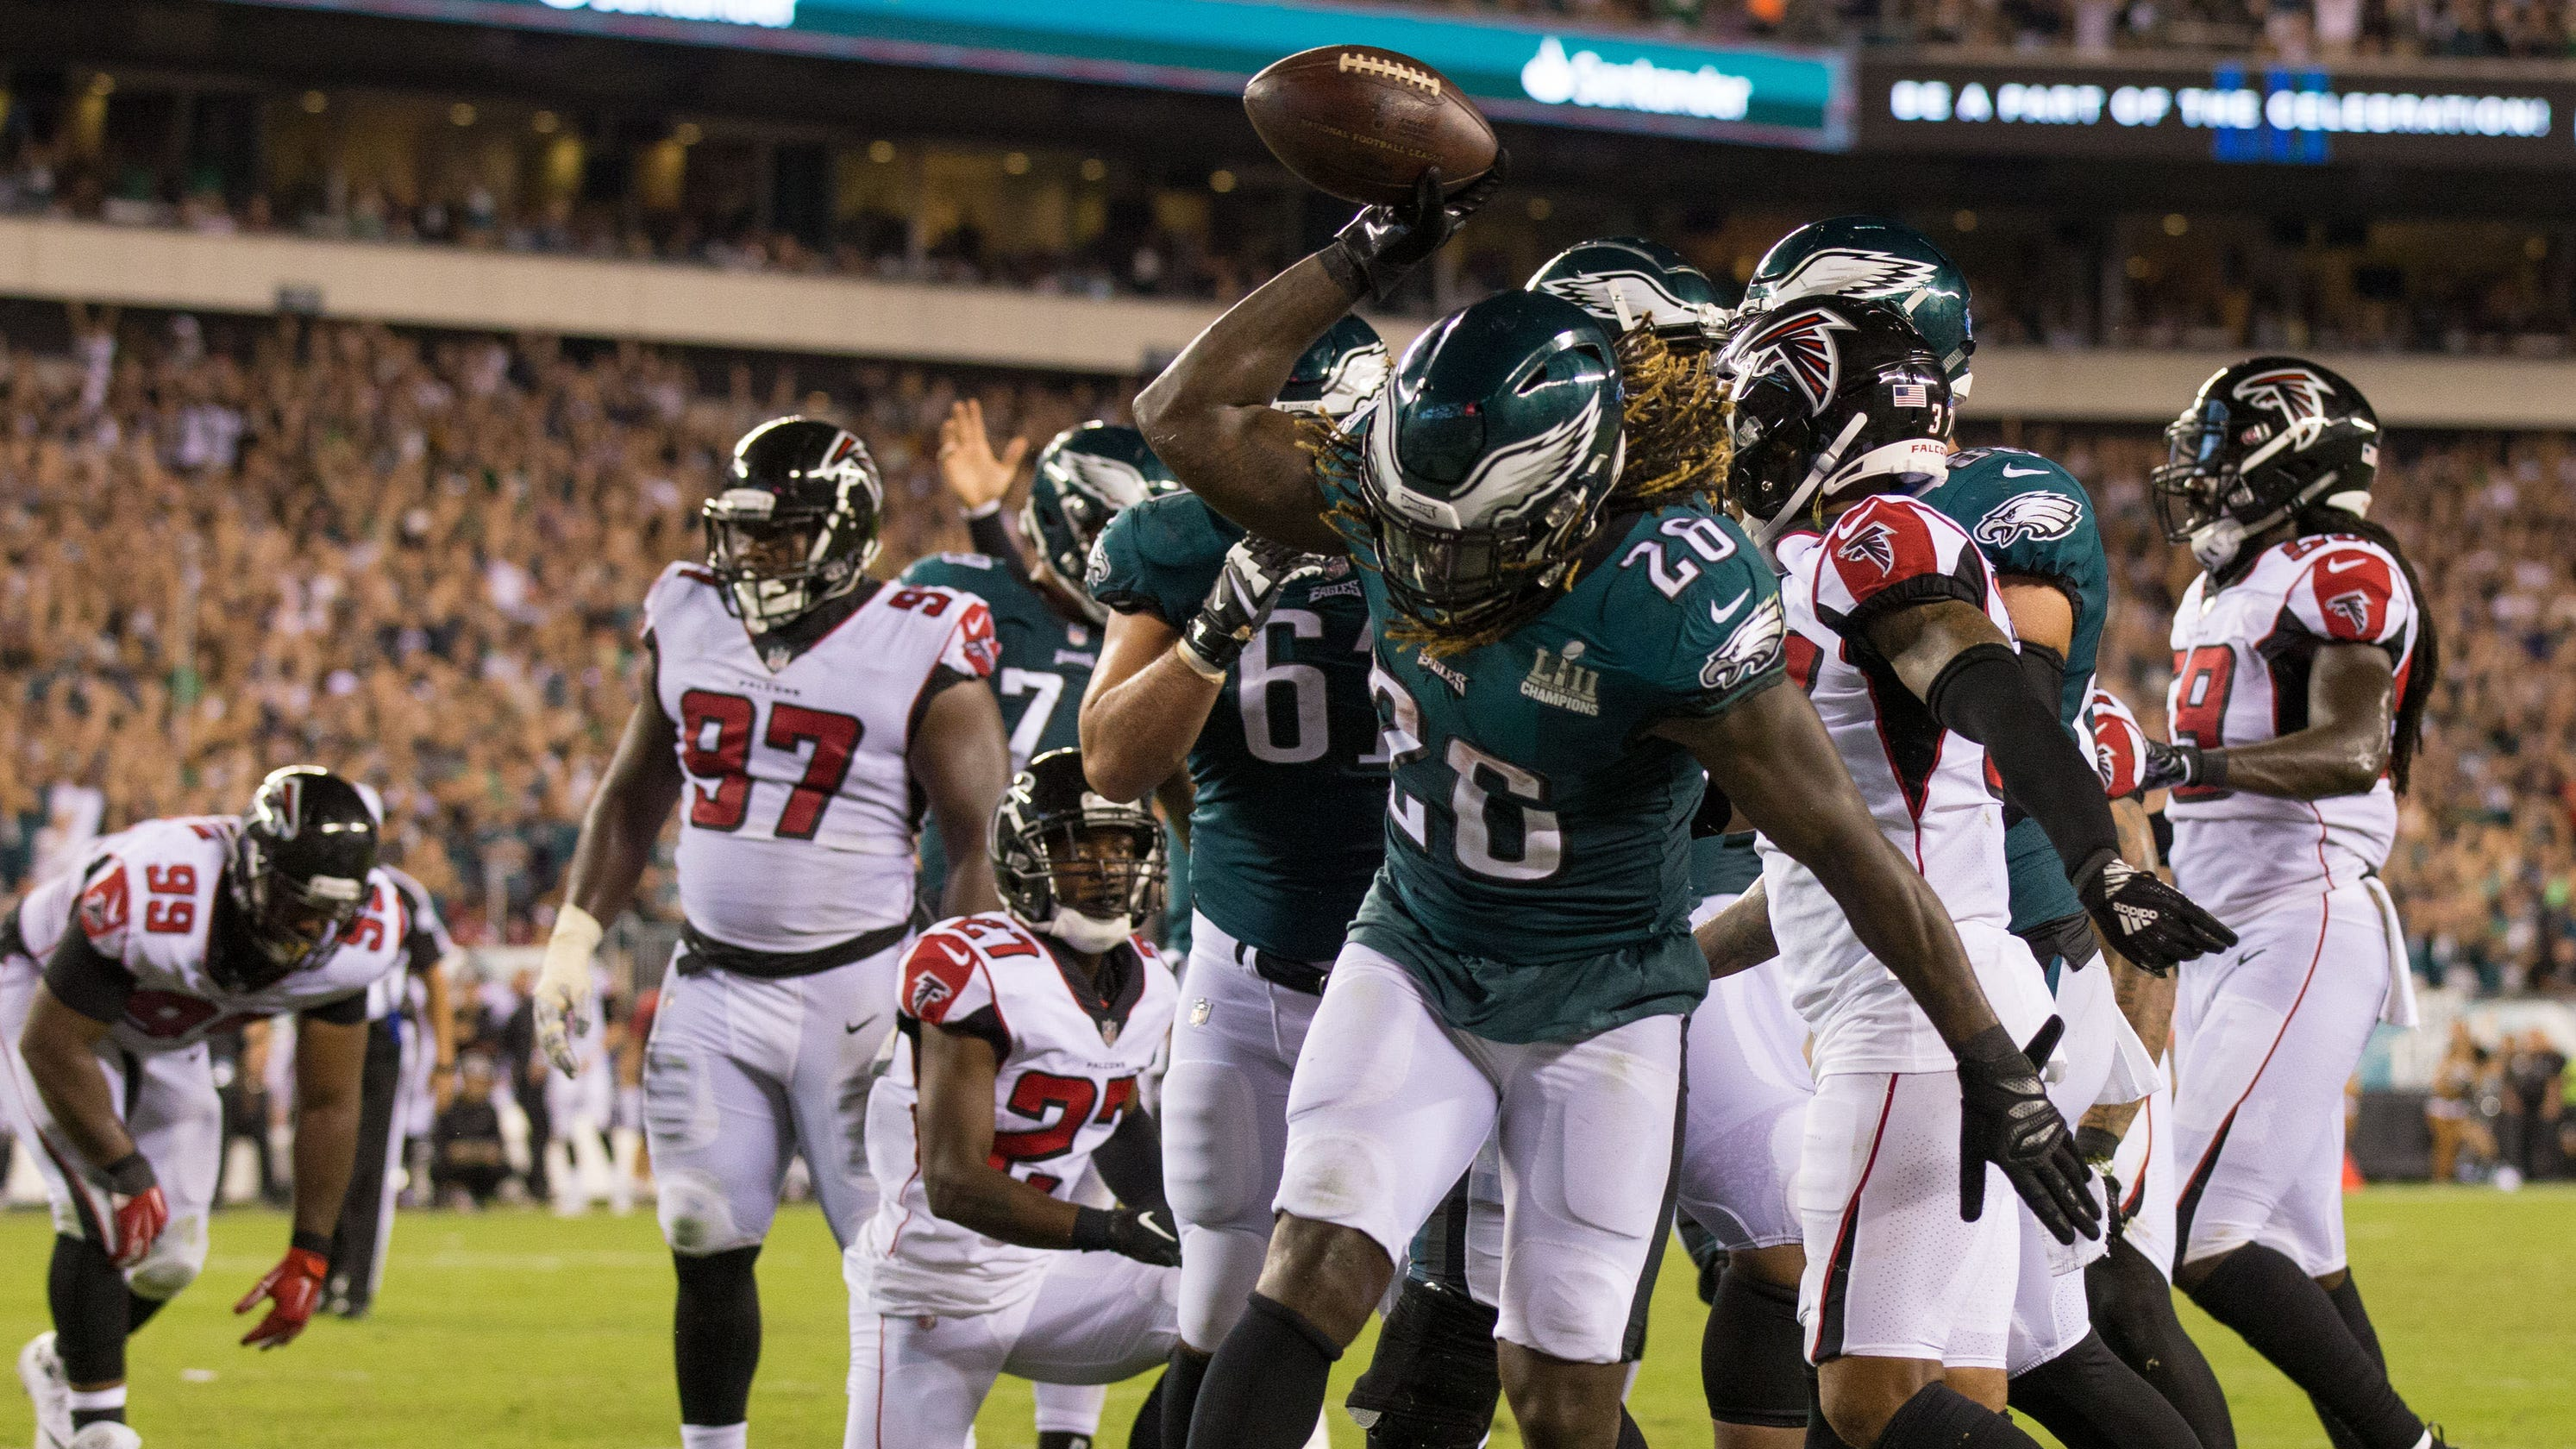 d7b2348f Eagles deny Falcons' last-second push to seal win in NFL season opener